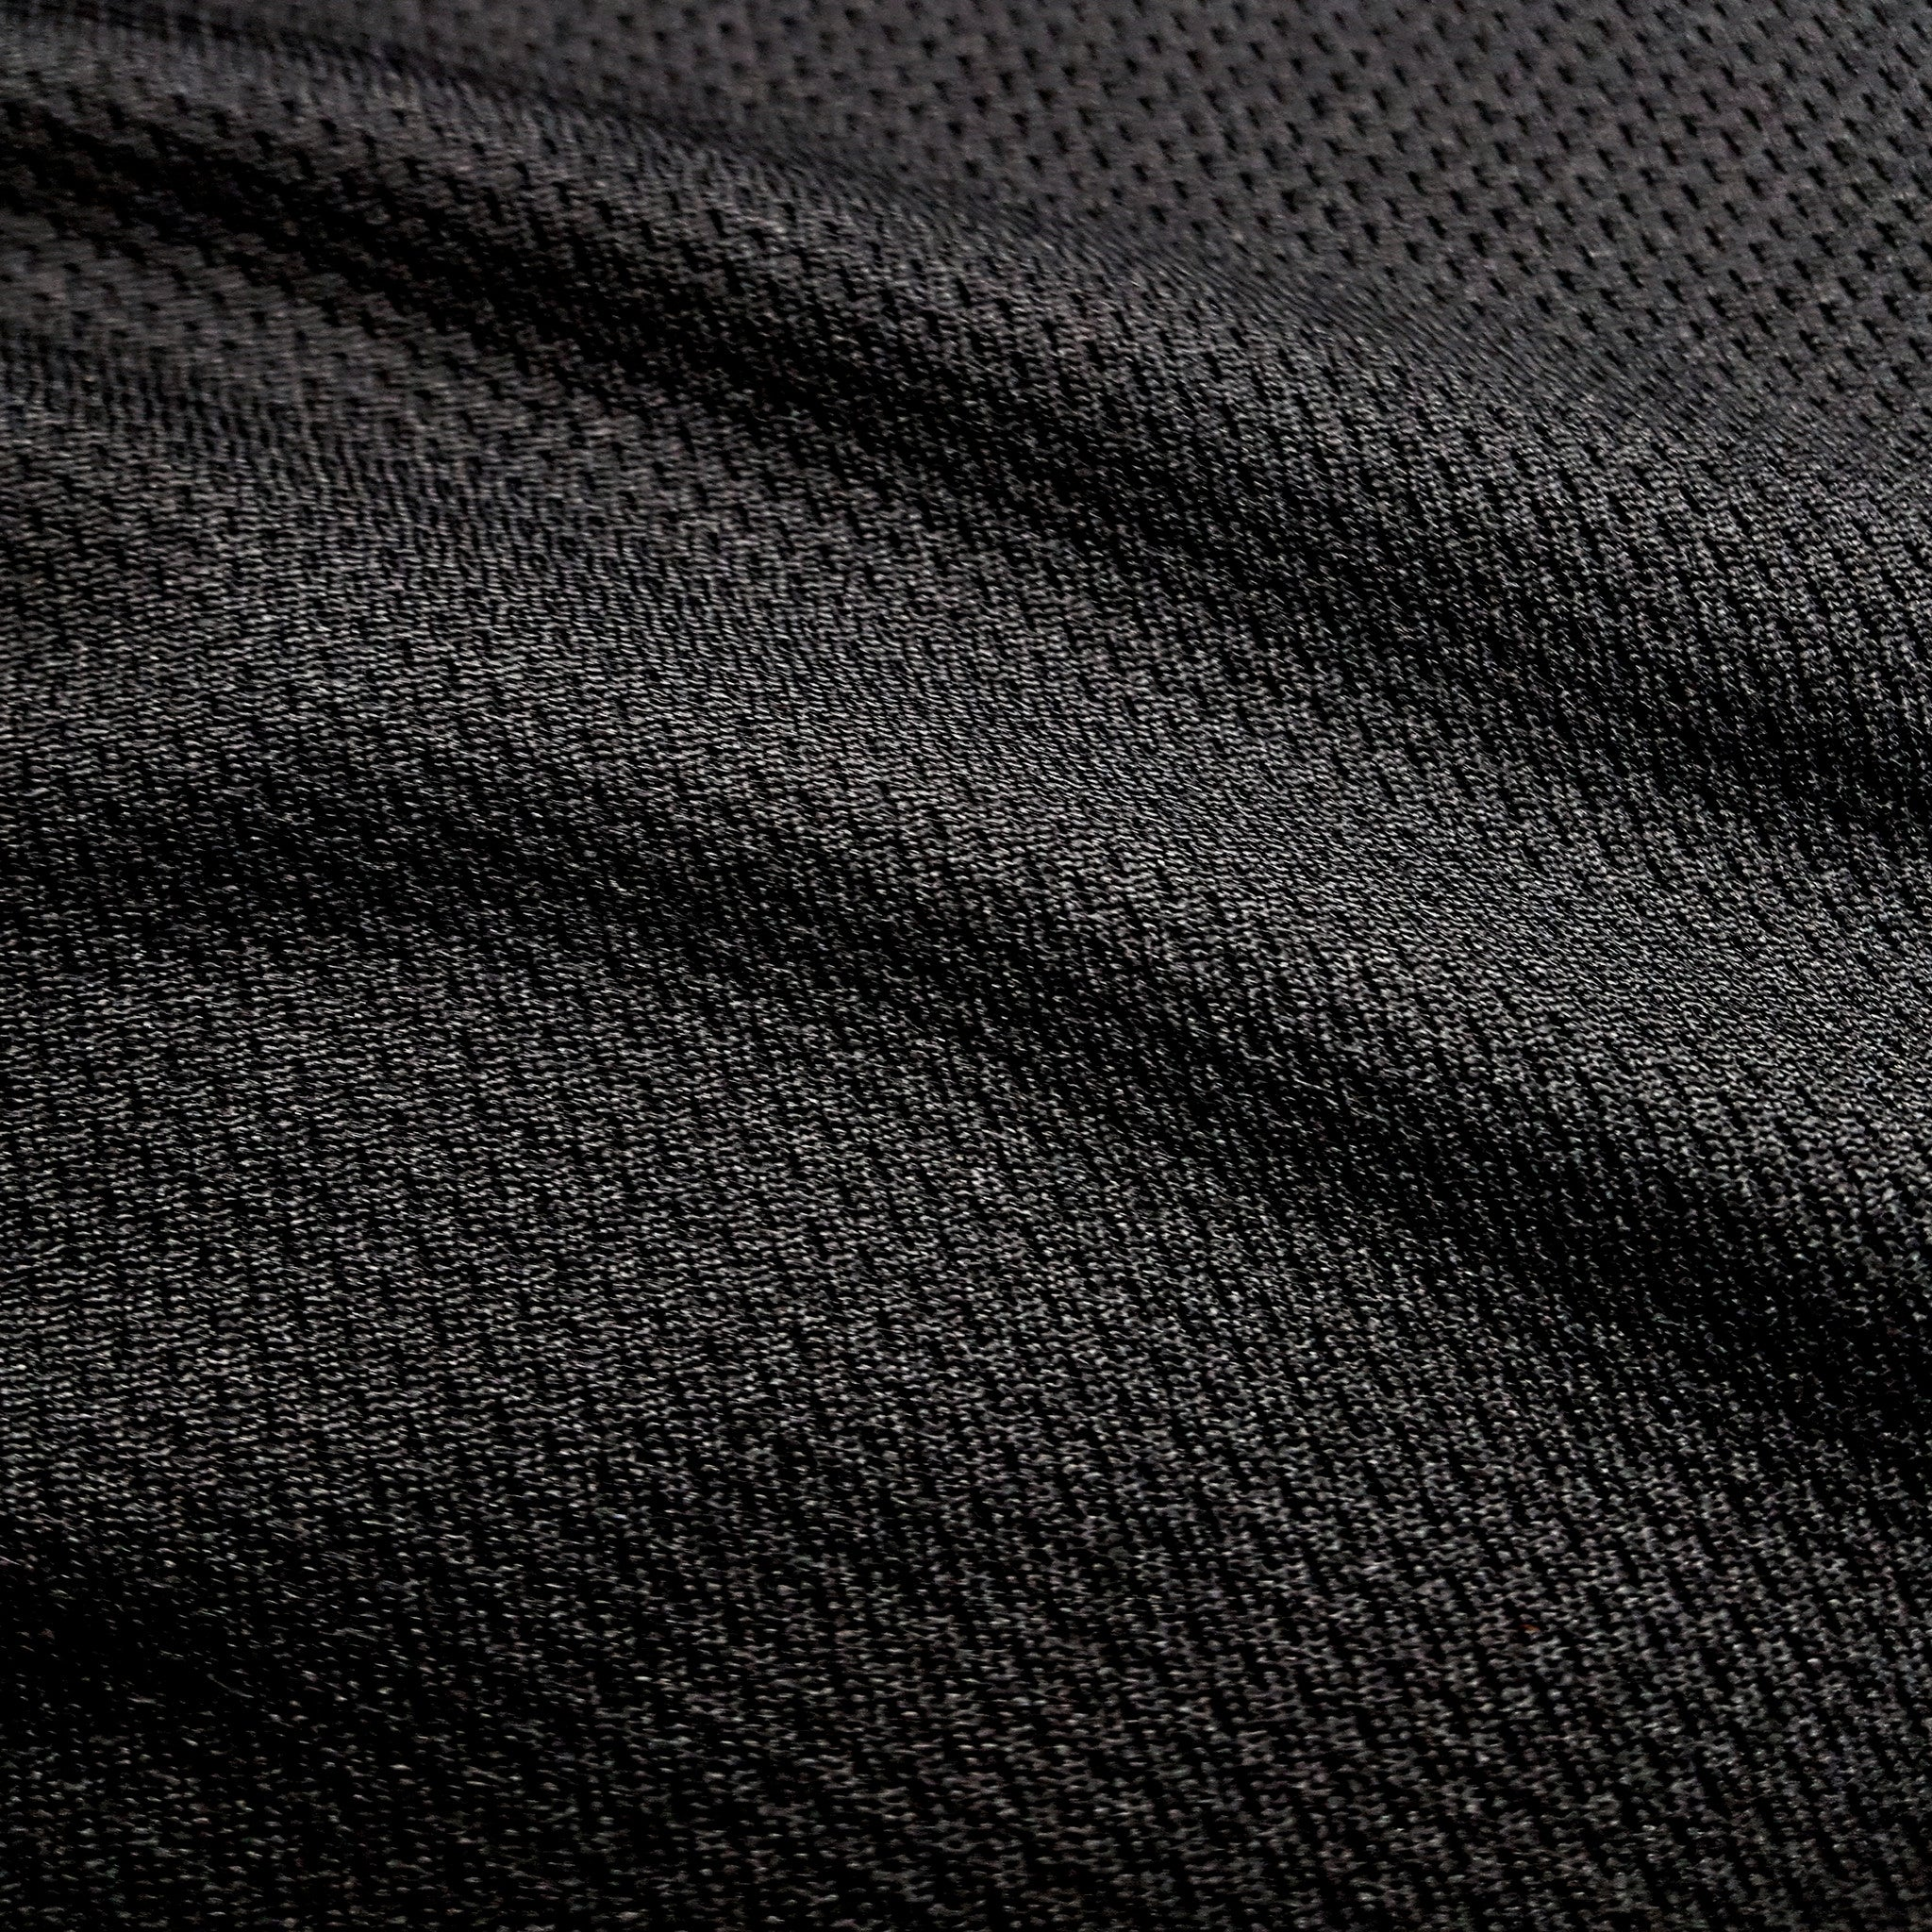 SportyFish Black Series black Long-sleeves t-shirt: Peacock Bass close-up view 5